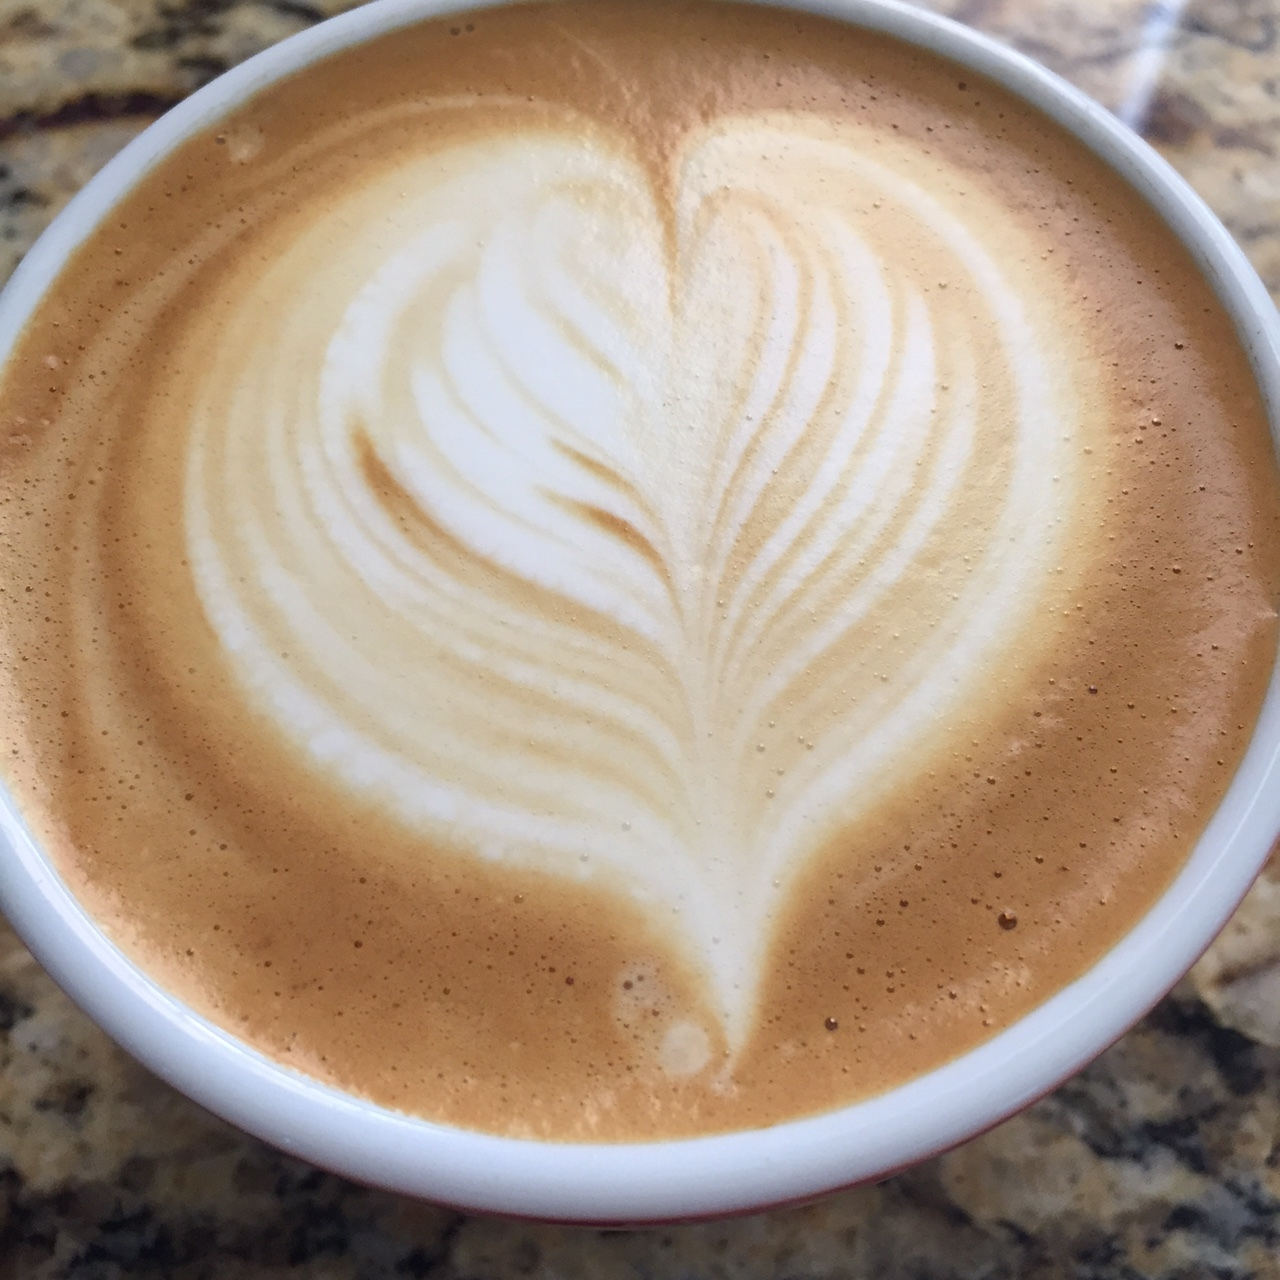 A traditional 5.5 ounce cappuccino created a sweet and creamy cappuccino with plenty of bright sugars.